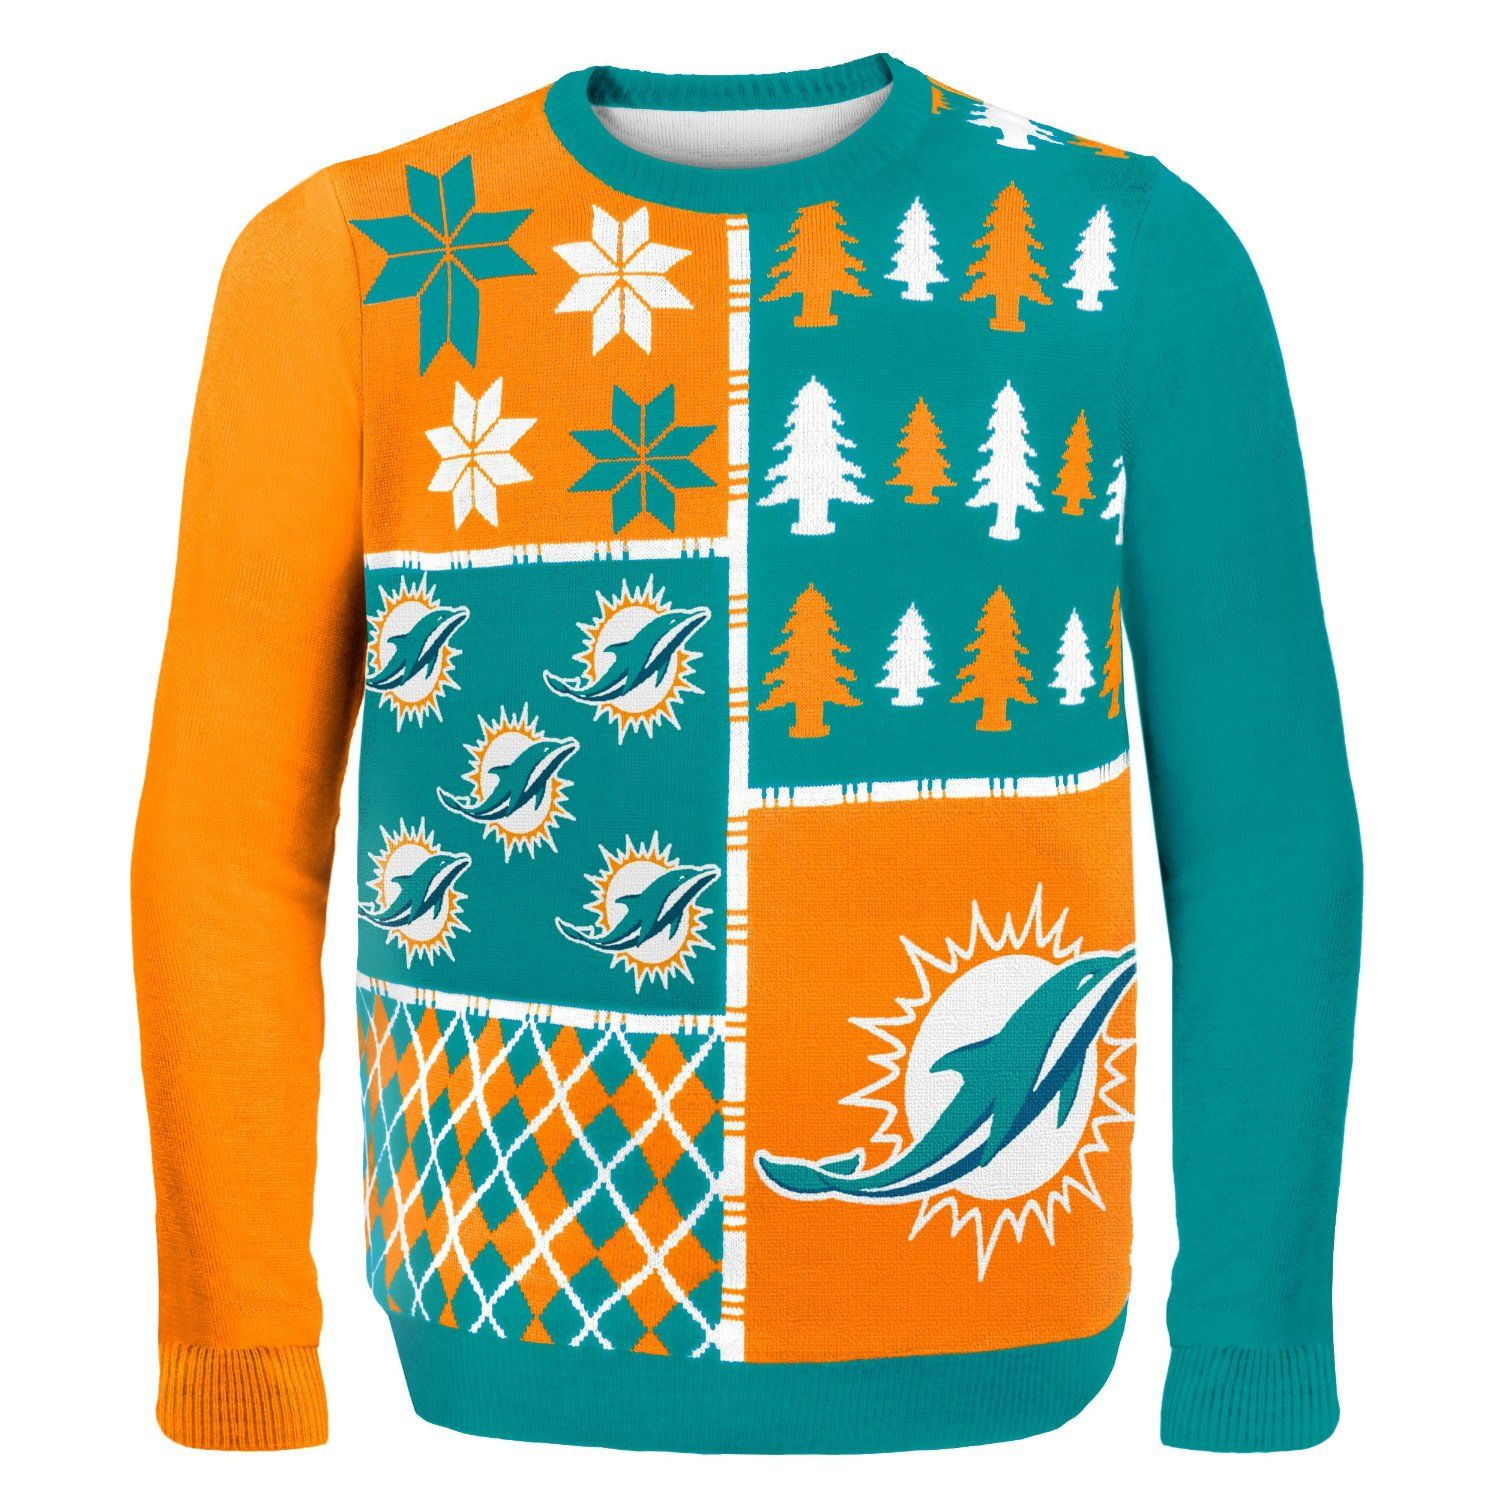 check out 5fce8 3f4c0 Pin on NFL-AFC East Ugly Christmas Sweaters